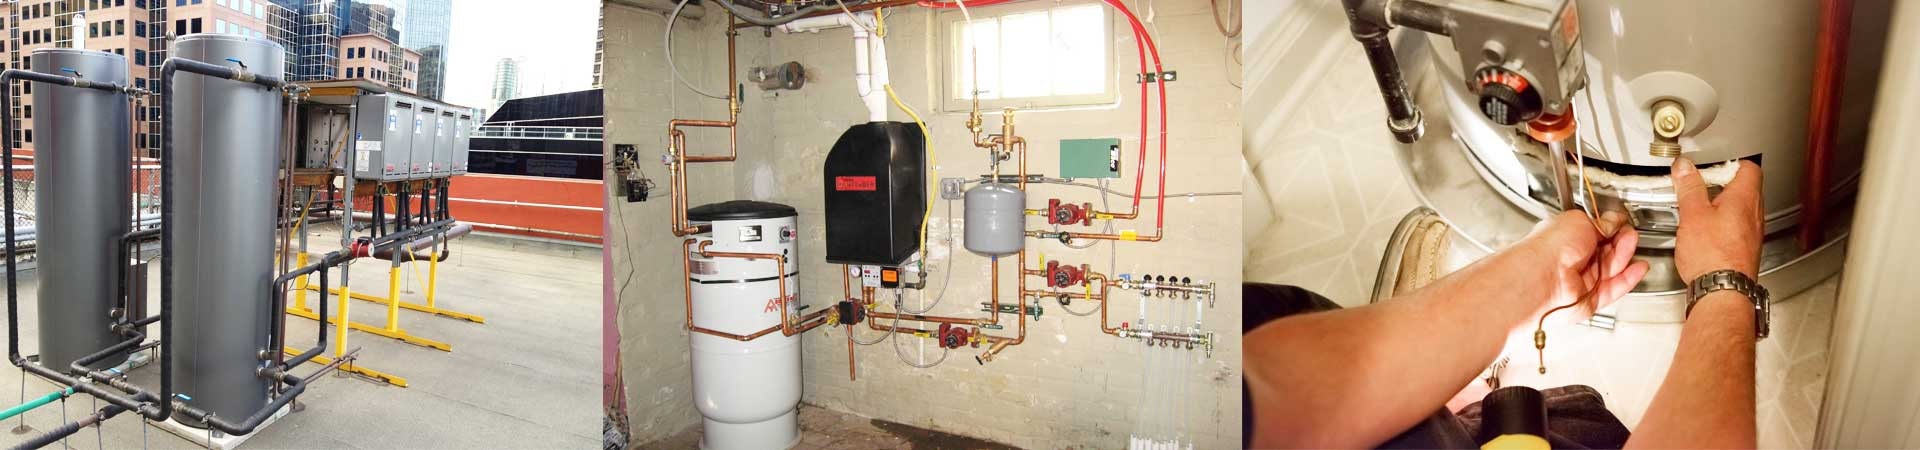 Heating Doctor Melbourne 1300 202 275 Installation And